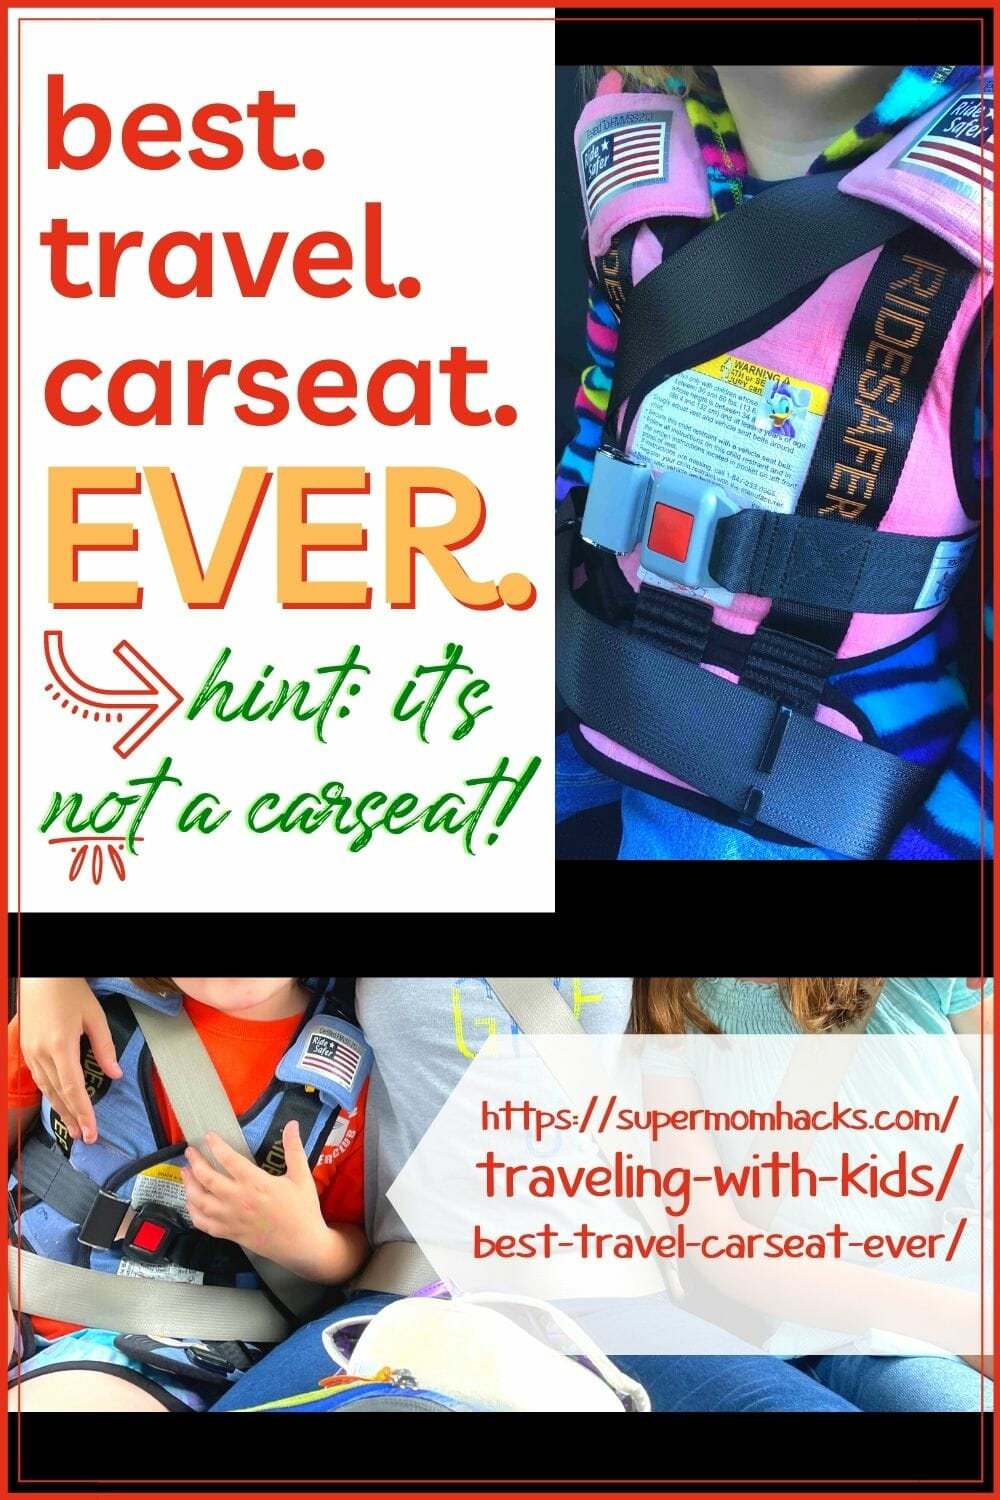 Looking for a new carseat that's friendly to everything from airline travel to carpools? Here's my pick for the best travel carseat EVER. Best Travel Carseat Ever (Hint: it's not a carseat!) - SuperMomHacks | travel car seat for 3 year old | best travel car seats for 3 year old | best car seat to travel with | travel car seat booster | travel with car seat | travel car seat bag | travel car seat cart | travel car seat lightweight | travel car seat vest | how to fly with a car seat